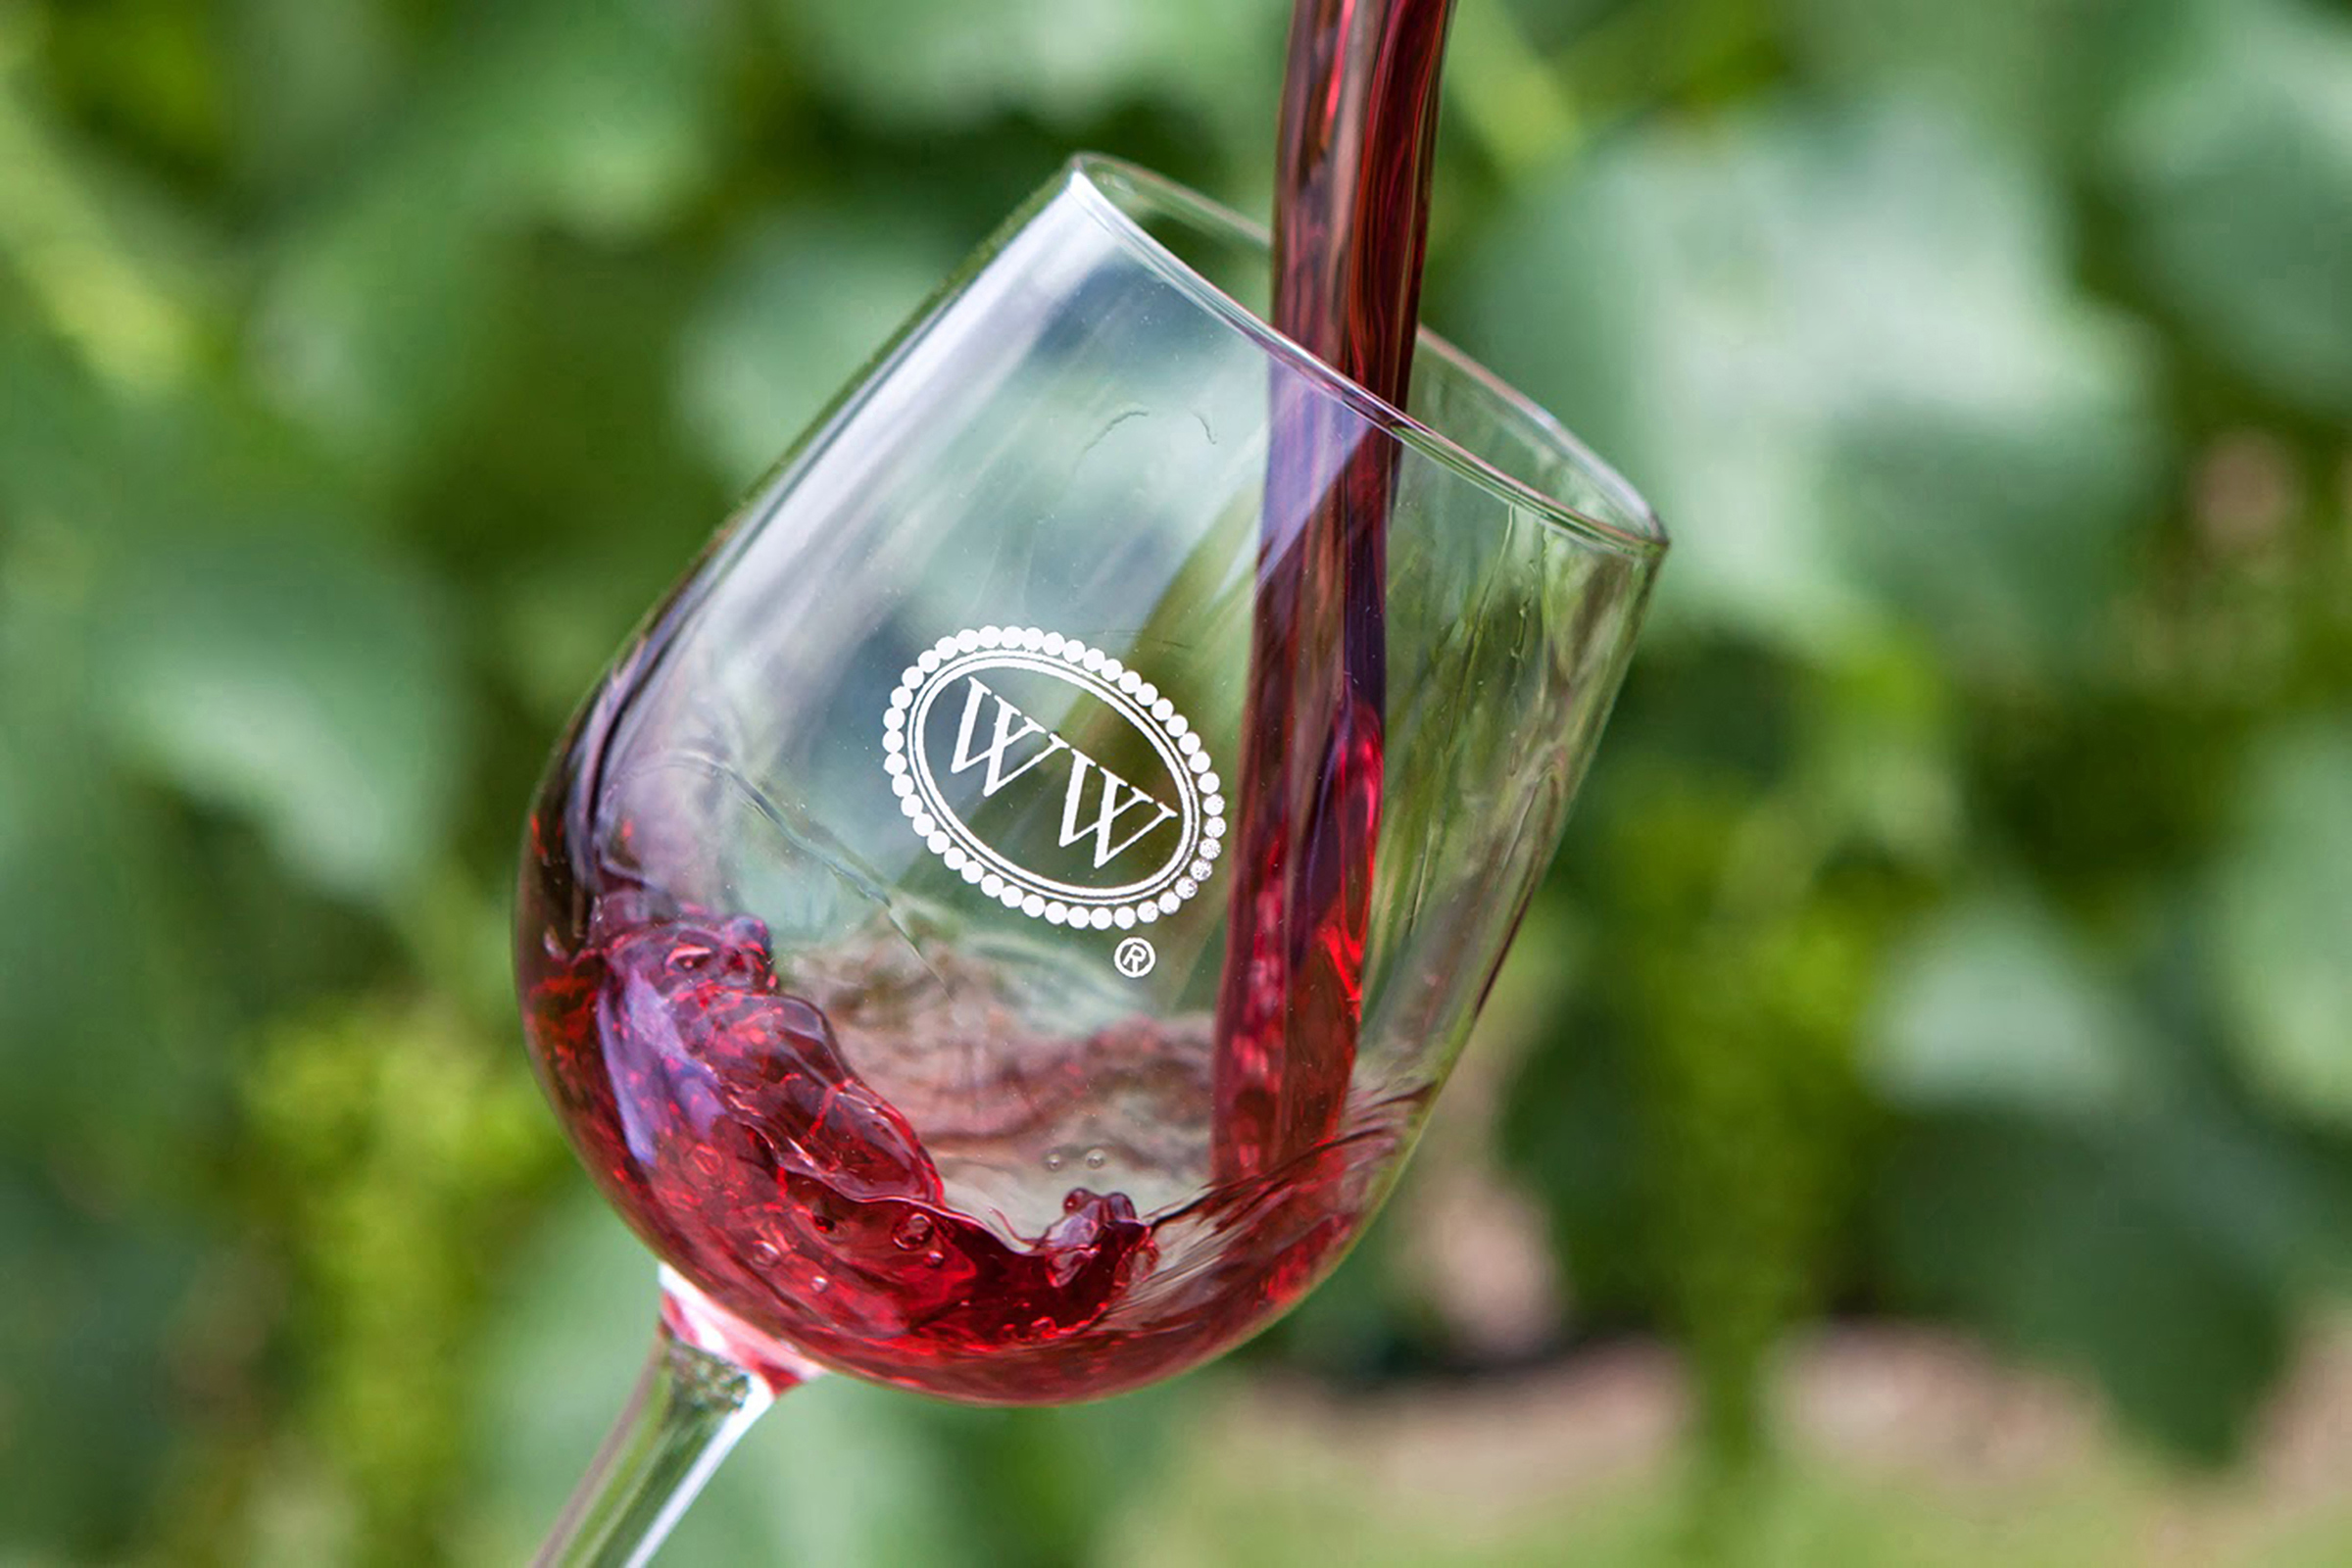 The Williamsburg Winery Wine Glass